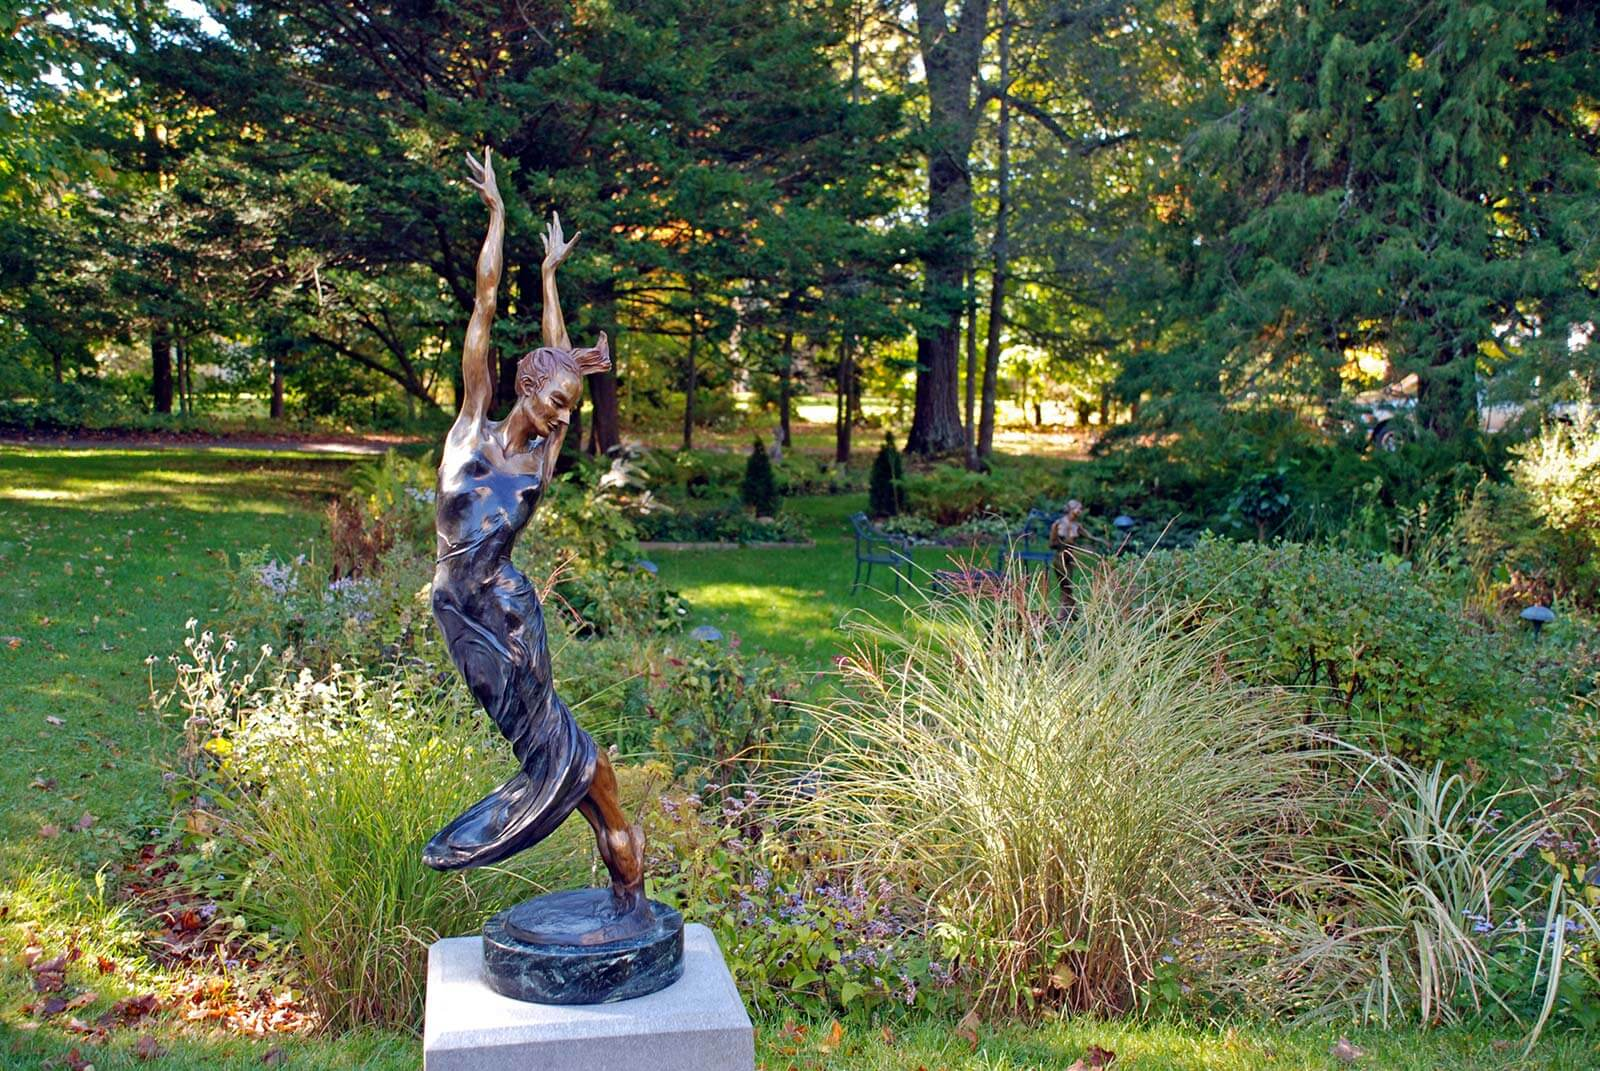 Allegro bronze dance sculpture at Bee and Thistle Sculpture Grounds during sculptor Andrew DeVries's solo exhibition